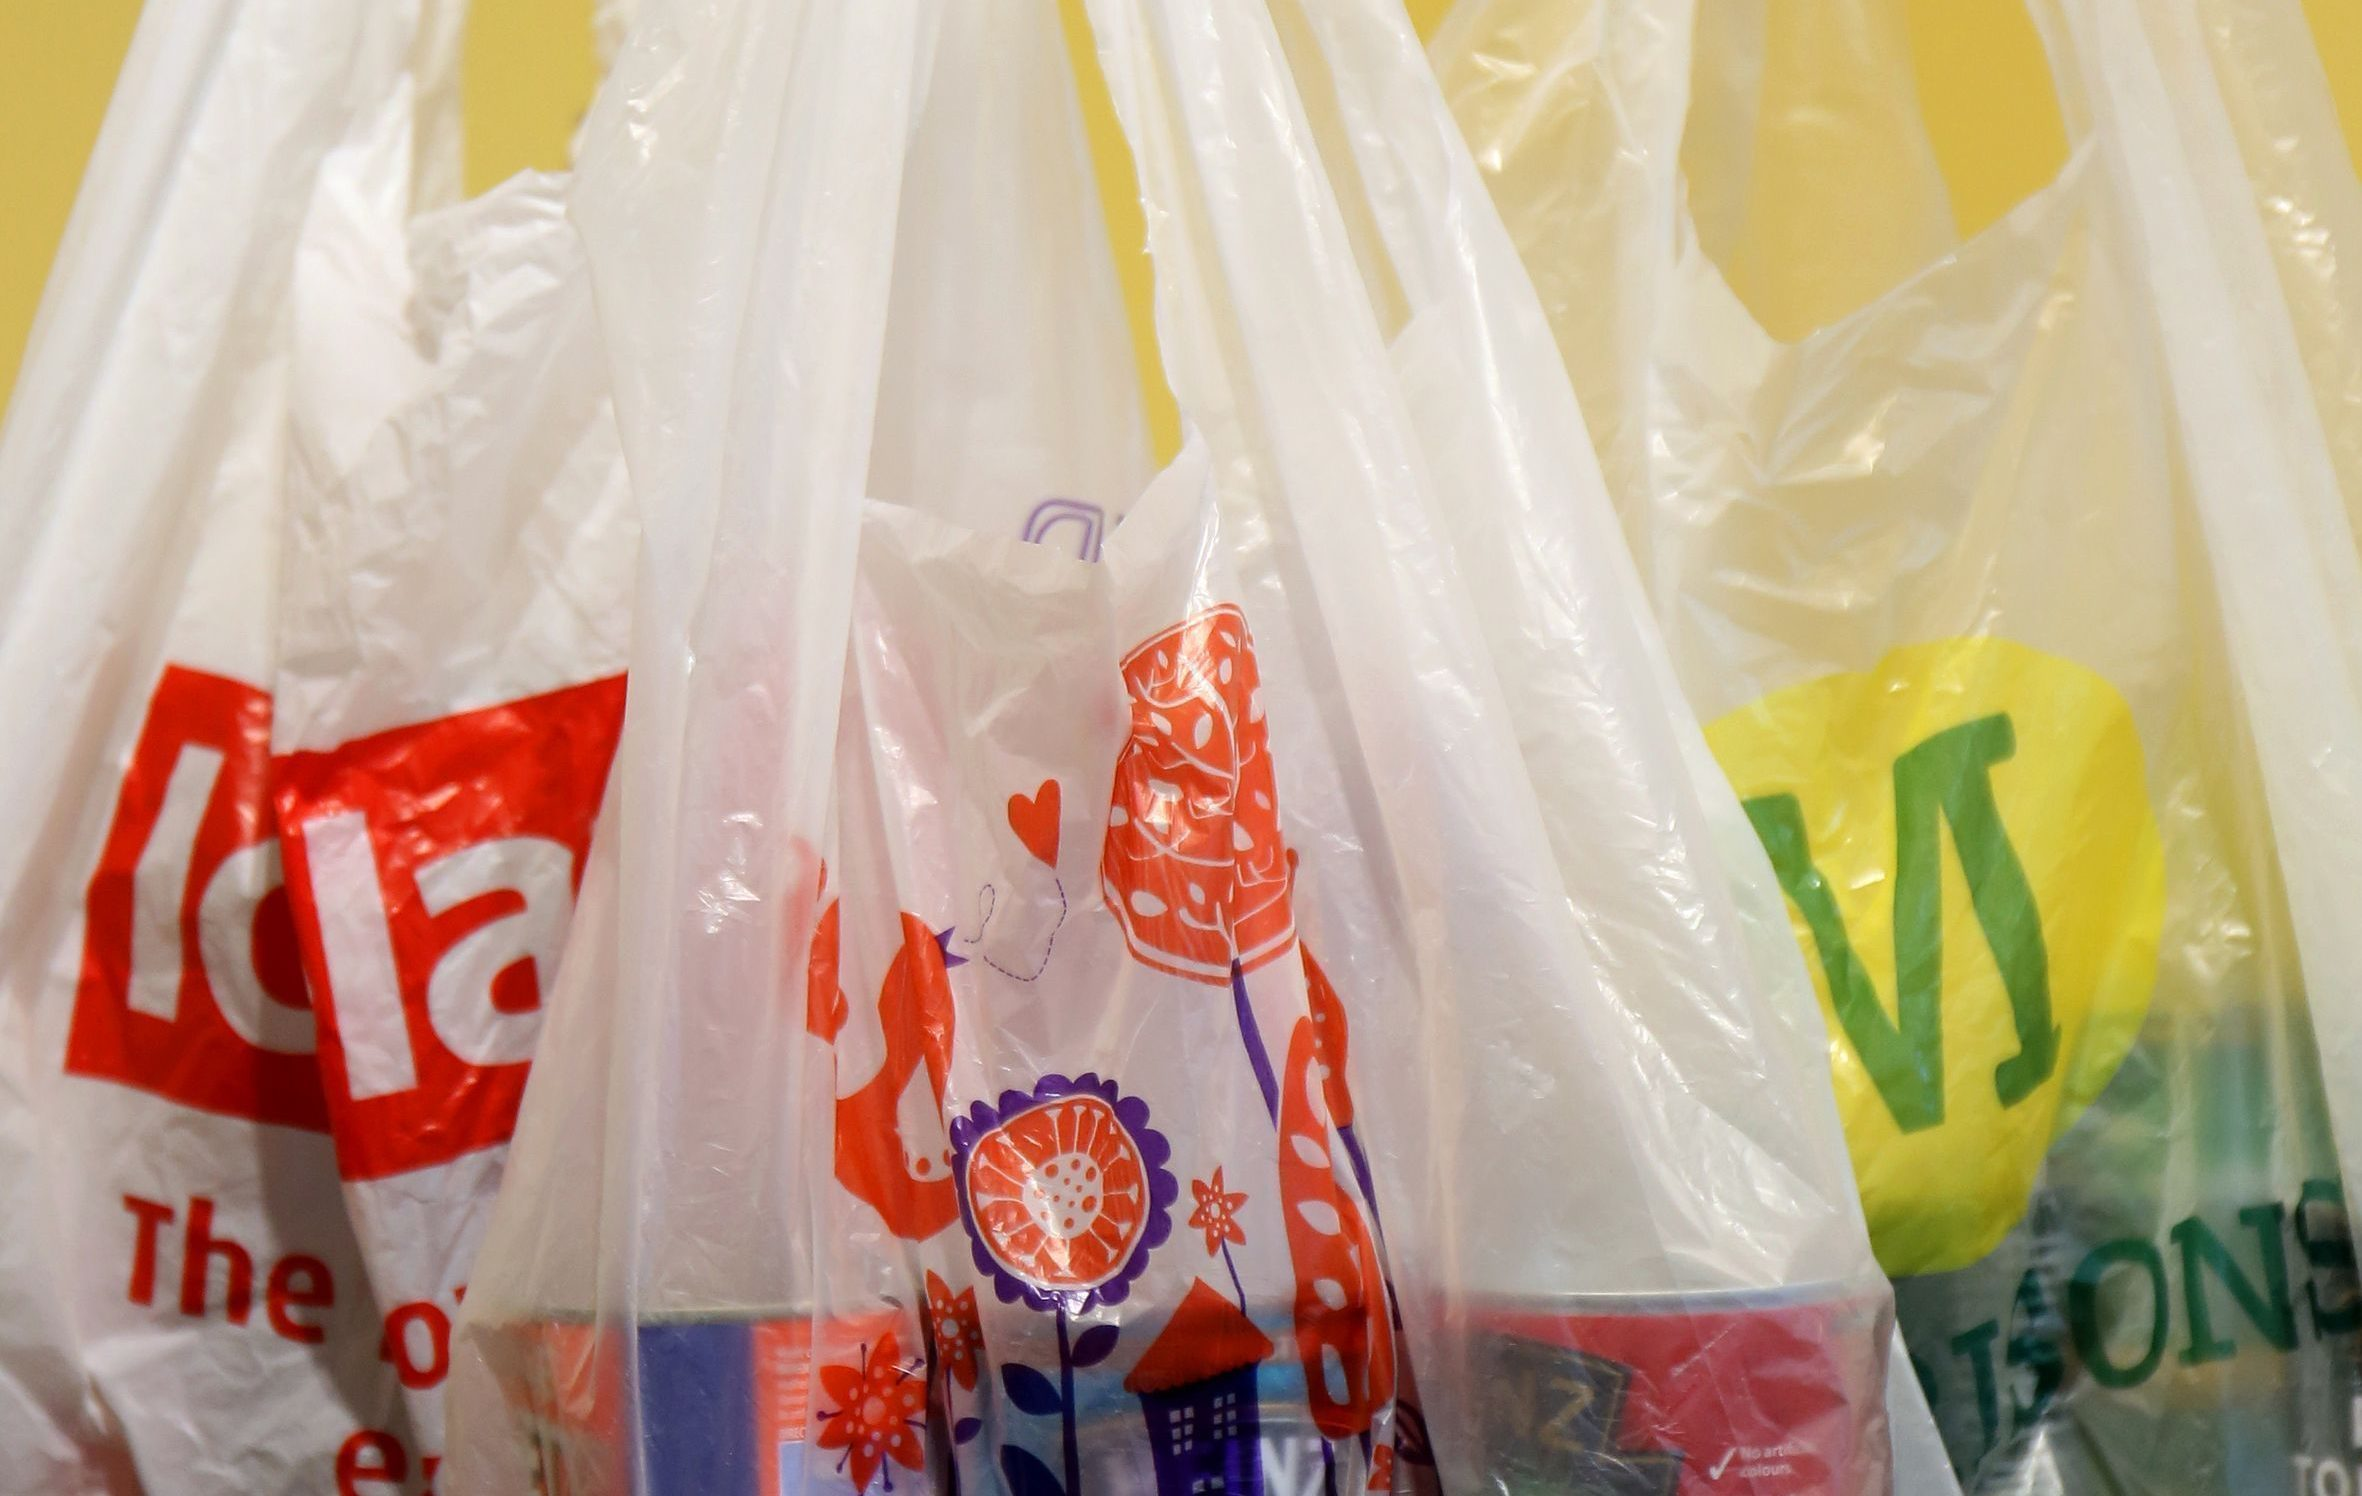 Campaigners are calling for charges for plastic bottles and disposable coffee cups after figures showed the 5p carrier bag levy had dramatically reduced use. (Chris Radburn/PA wire)